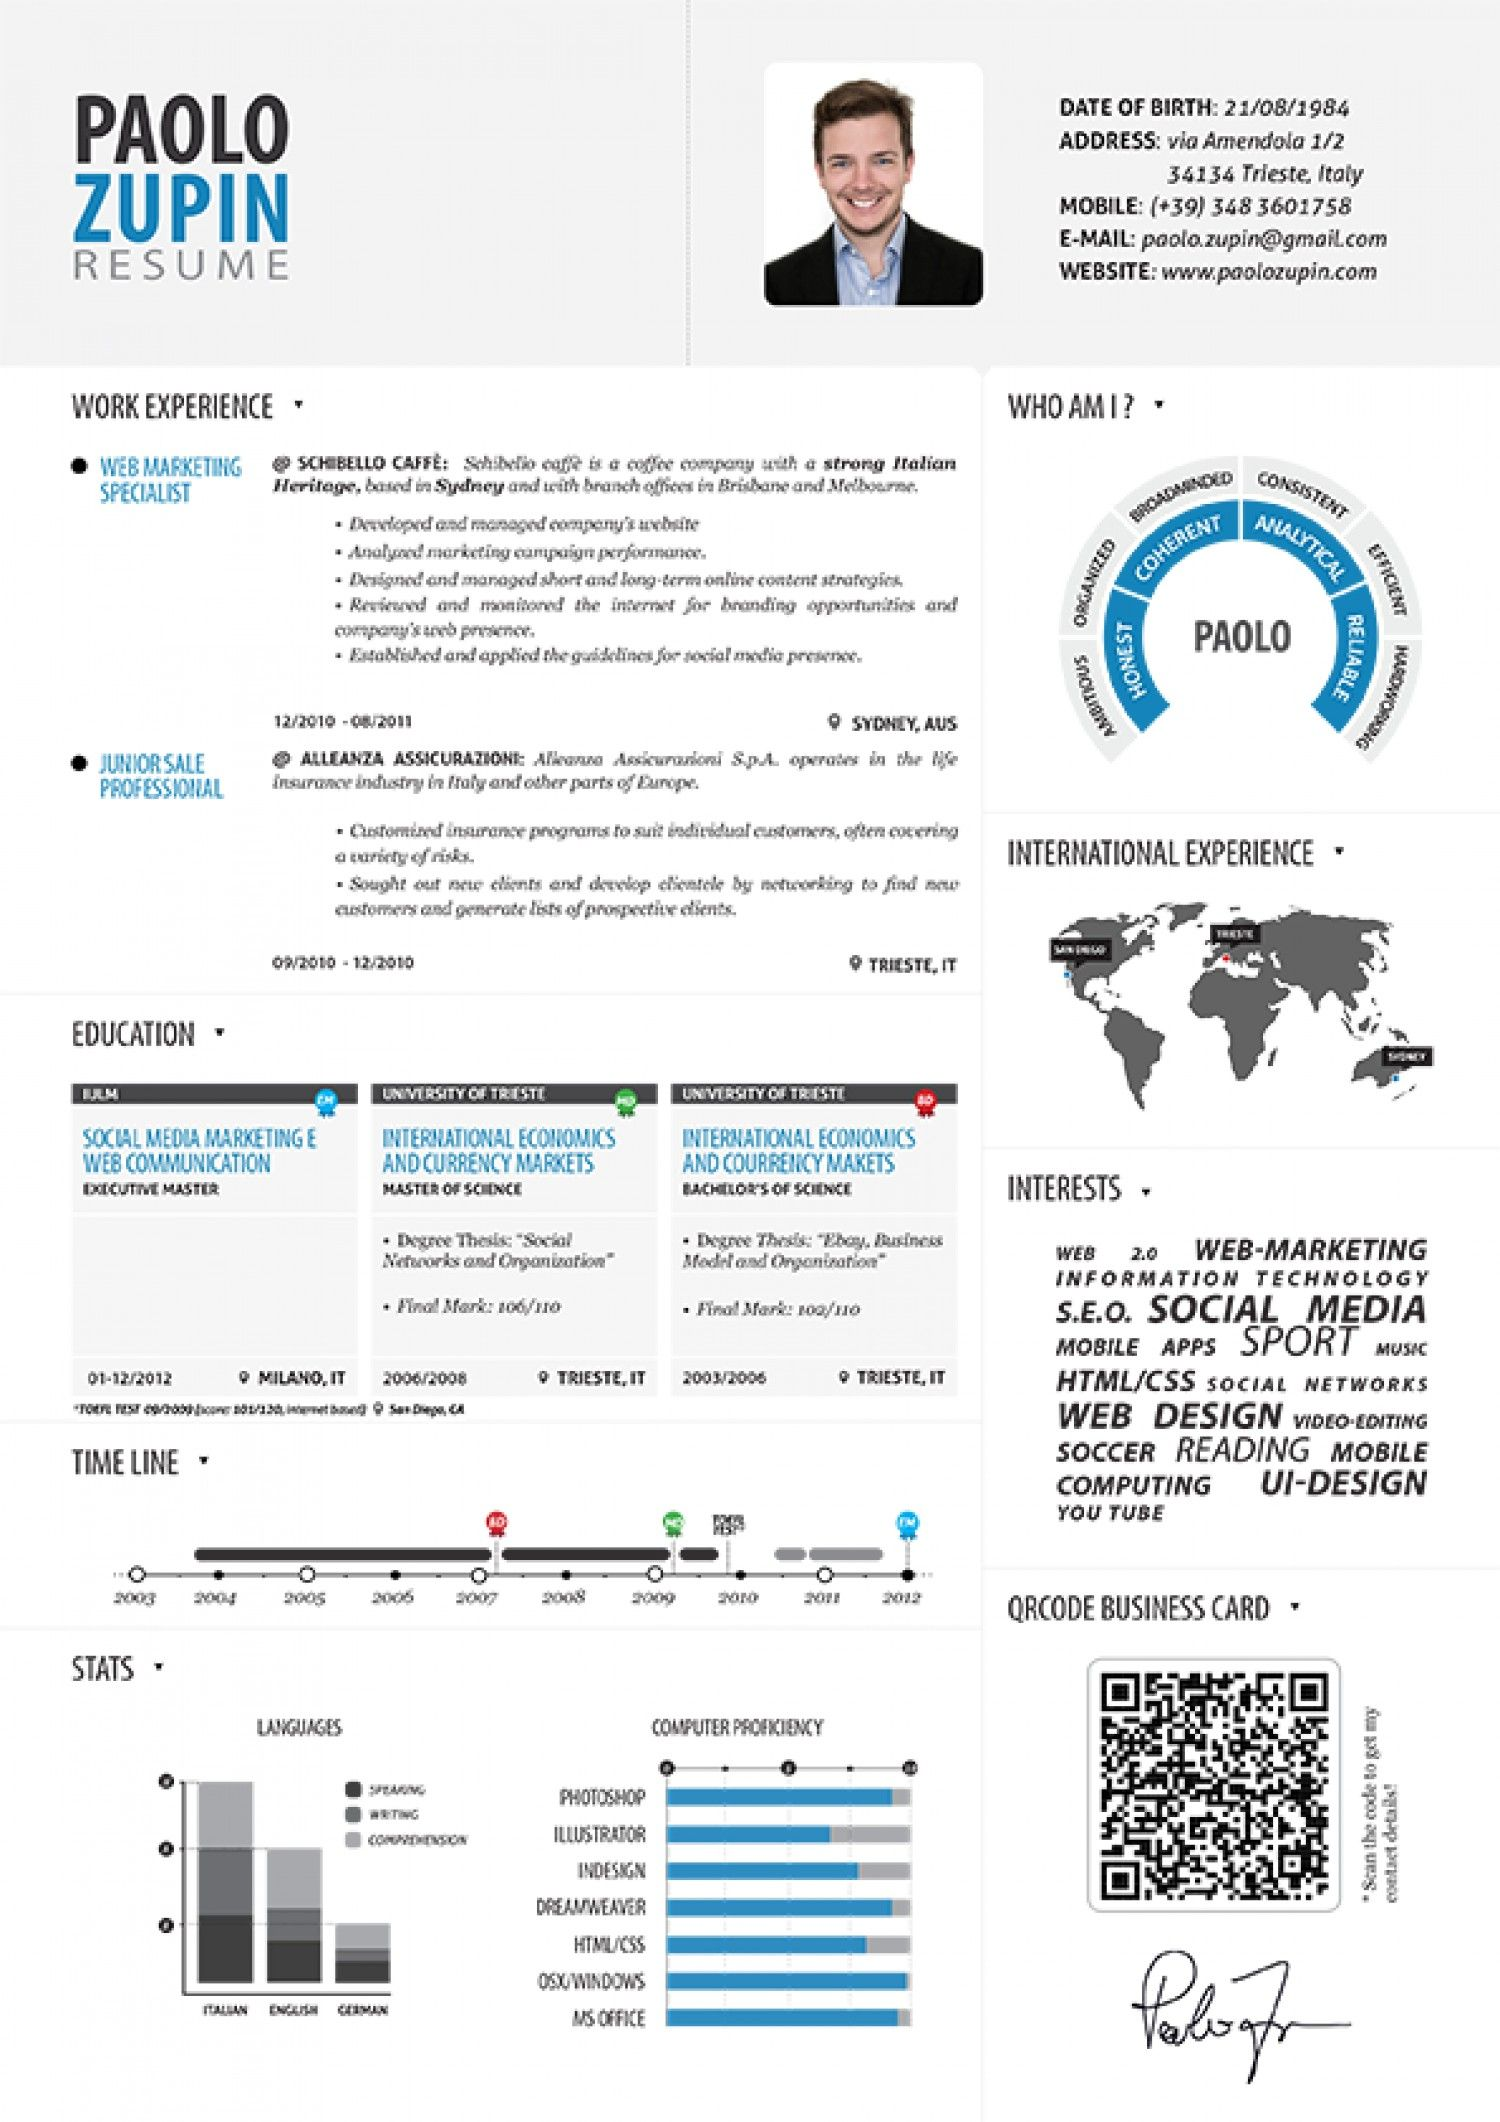 Opposenewapstandardsus  Stunning  Images About Infographic Resume On Pinterest  Infographic  With Heavenly  Images About Infographic Resume On Pinterest  Infographic Resume Resume And Business Resume With Charming Nurse Practitioner Resume Examples Also Resume For Construction In Addition Objectives For Resumes Examples And Software Skills For Resume As Well As Best Resume Services Additionally Optimal Resume Everest From Pinterestcom With Opposenewapstandardsus  Heavenly  Images About Infographic Resume On Pinterest  Infographic  With Charming  Images About Infographic Resume On Pinterest  Infographic Resume Resume And Business Resume And Stunning Nurse Practitioner Resume Examples Also Resume For Construction In Addition Objectives For Resumes Examples From Pinterestcom